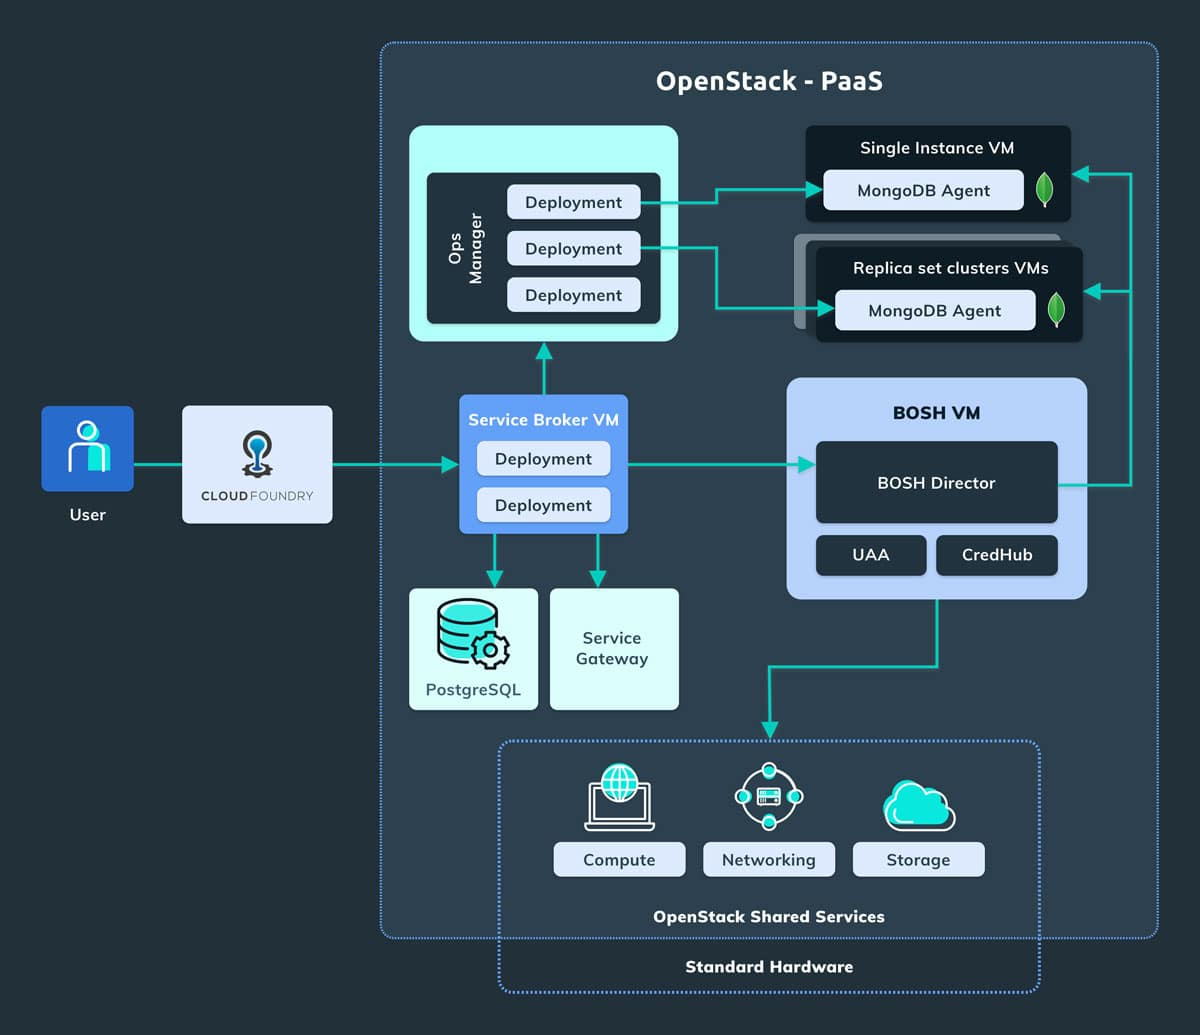 The Overall Architecture of our Proposed MongoDB as a Service